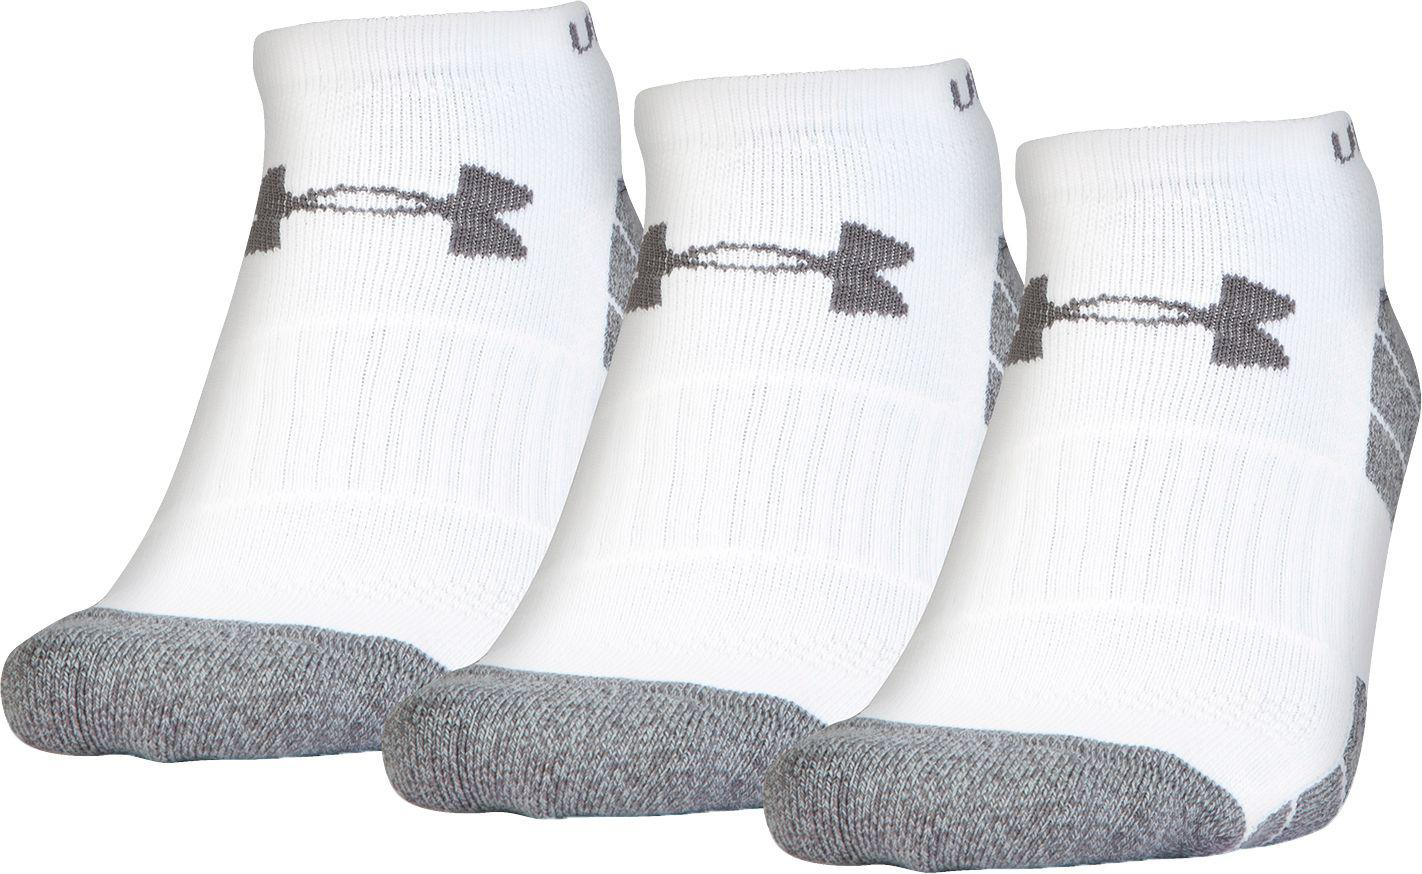 7a1a95171a9 Under Armour - White Elevated Performance No Show Socks 3 Pack for Men -  Lyst